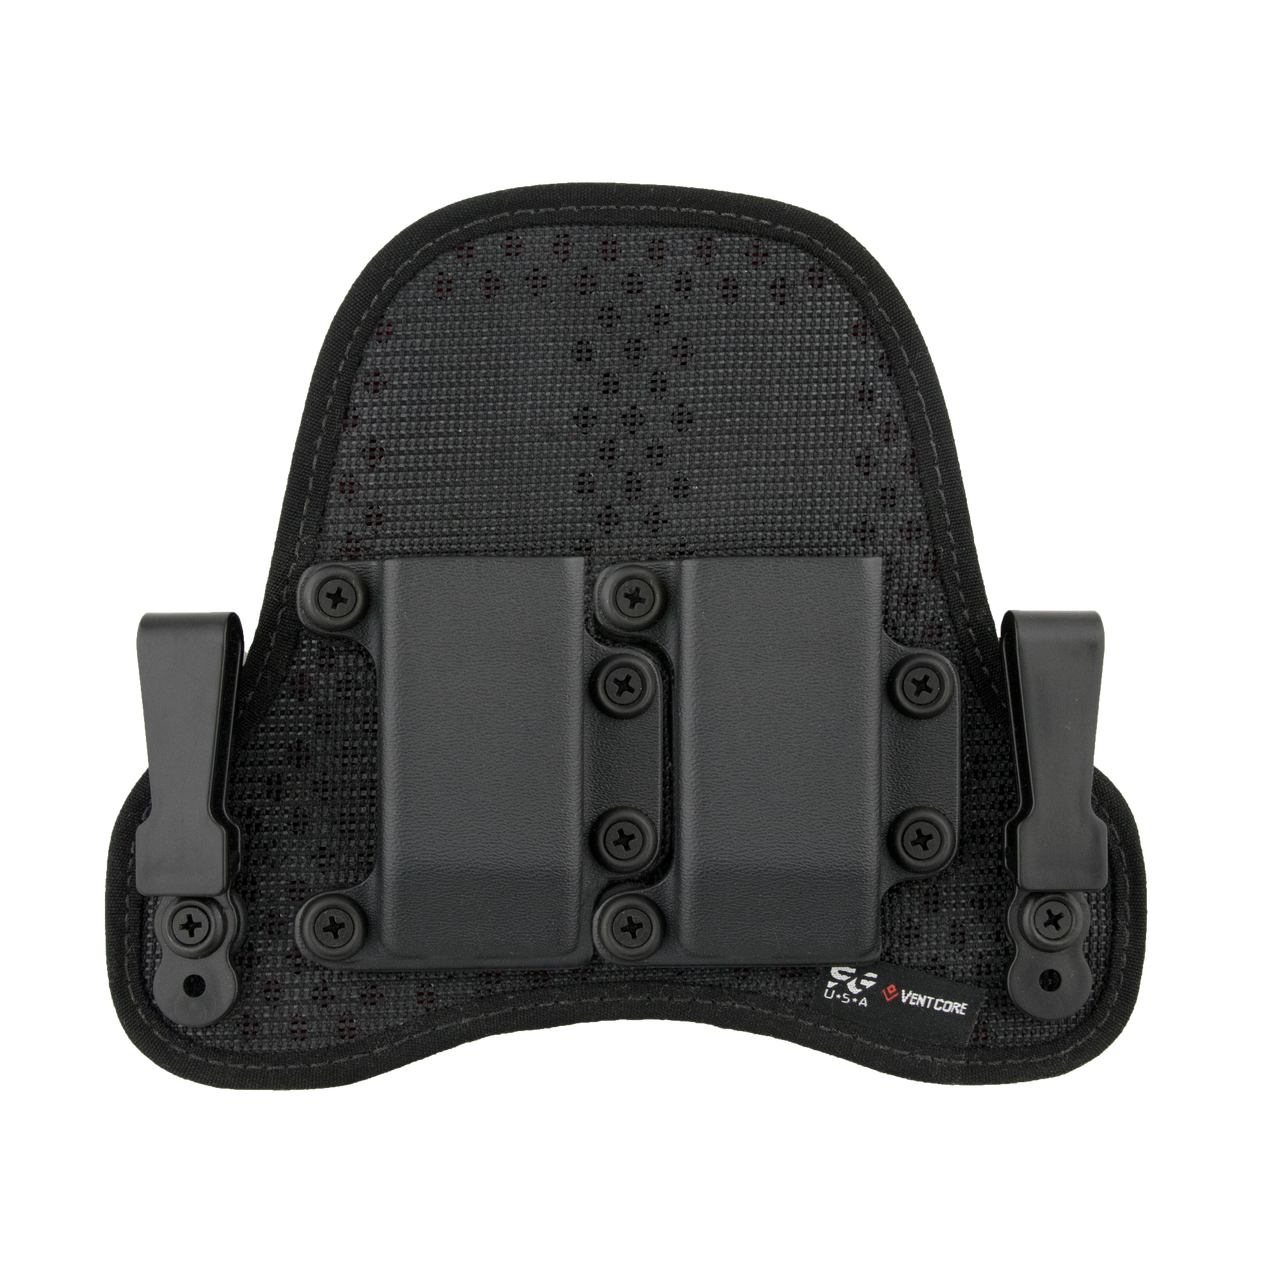 StealthGear Ventcore Double Standard Mag Carrier Tactical Gear Australia Supplier Distributor Dealer